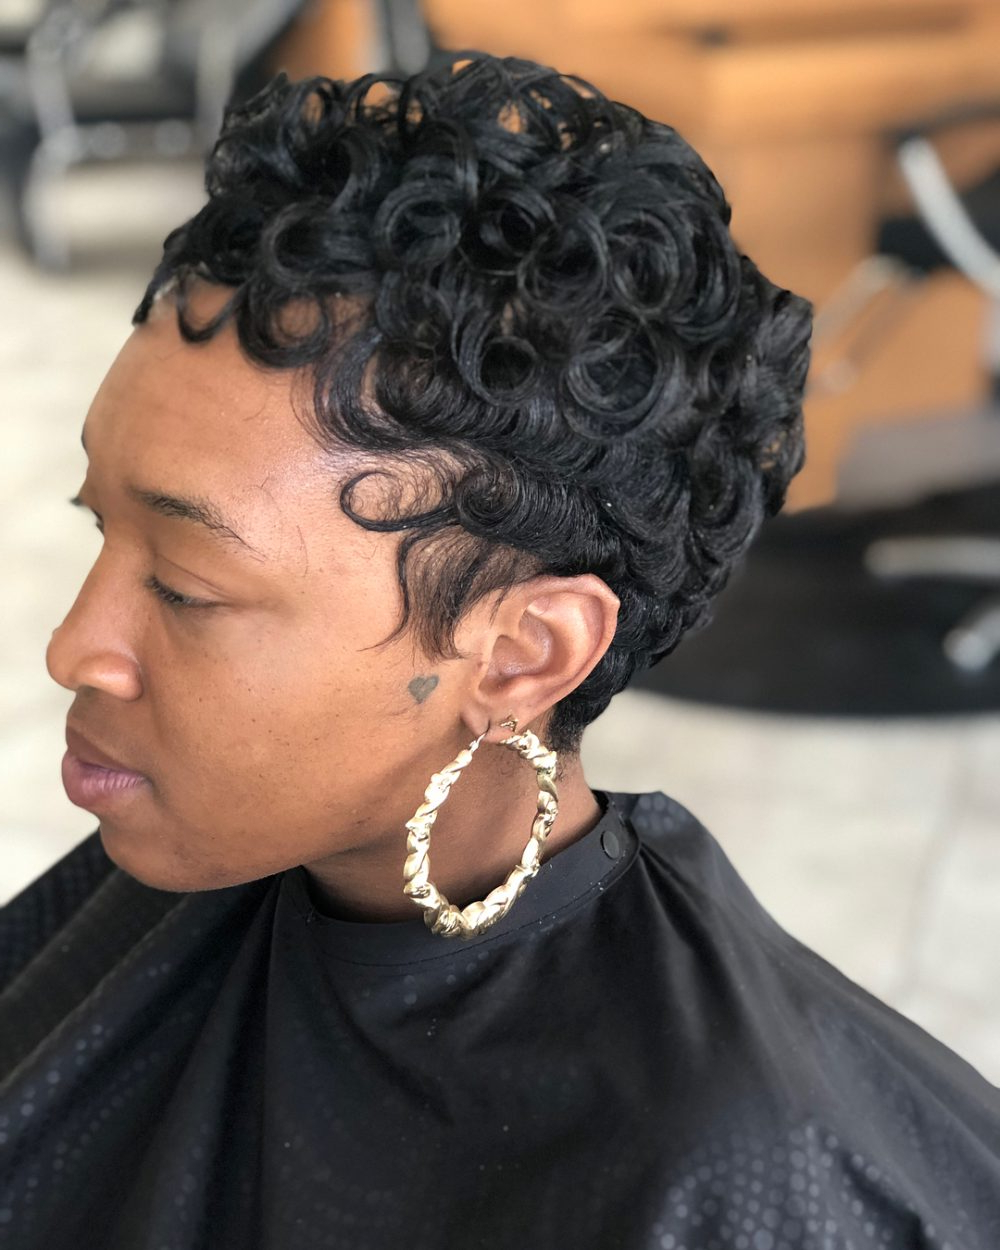 54 Easy Short Hairstyles For Black Women Throughout Current Medium Haircuts For Black Women With Oval Faces (View 6 of 20)